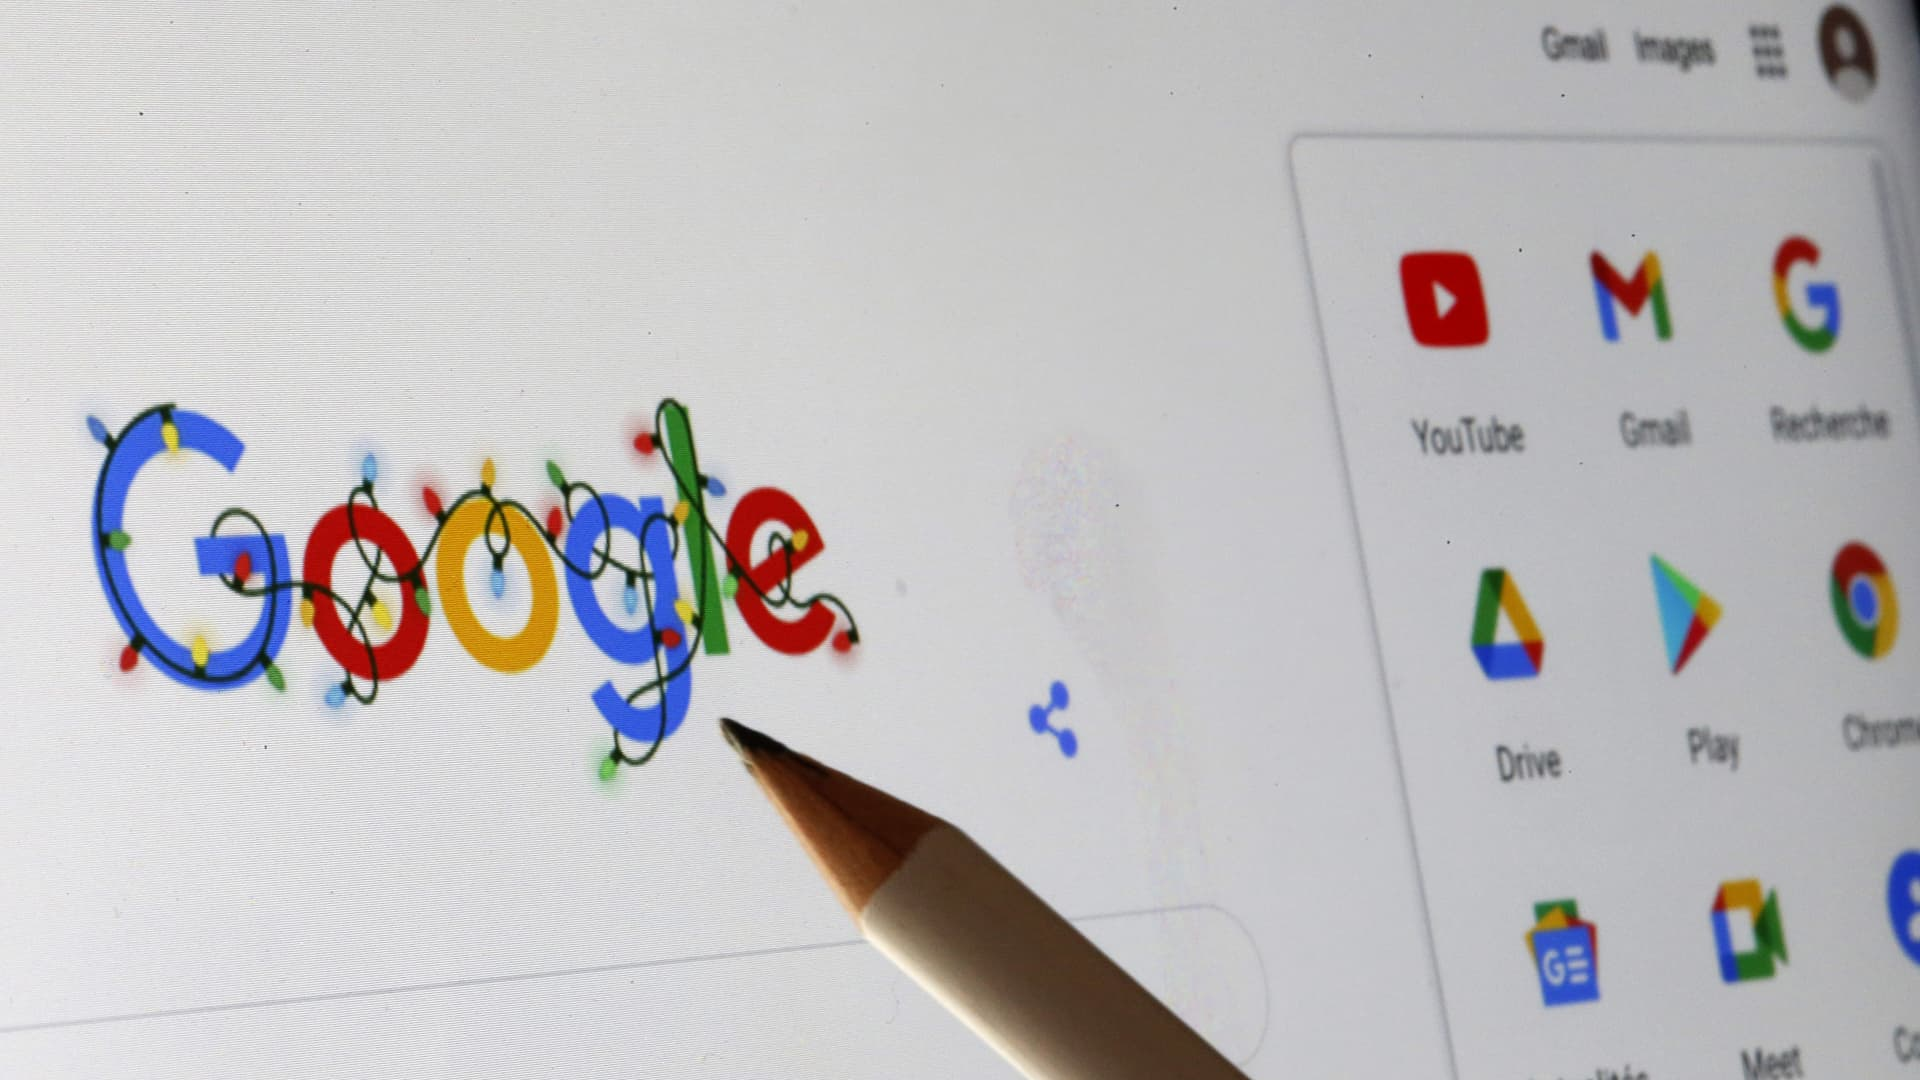 The logos of Google and several of its applications are displayed on a computer screen.